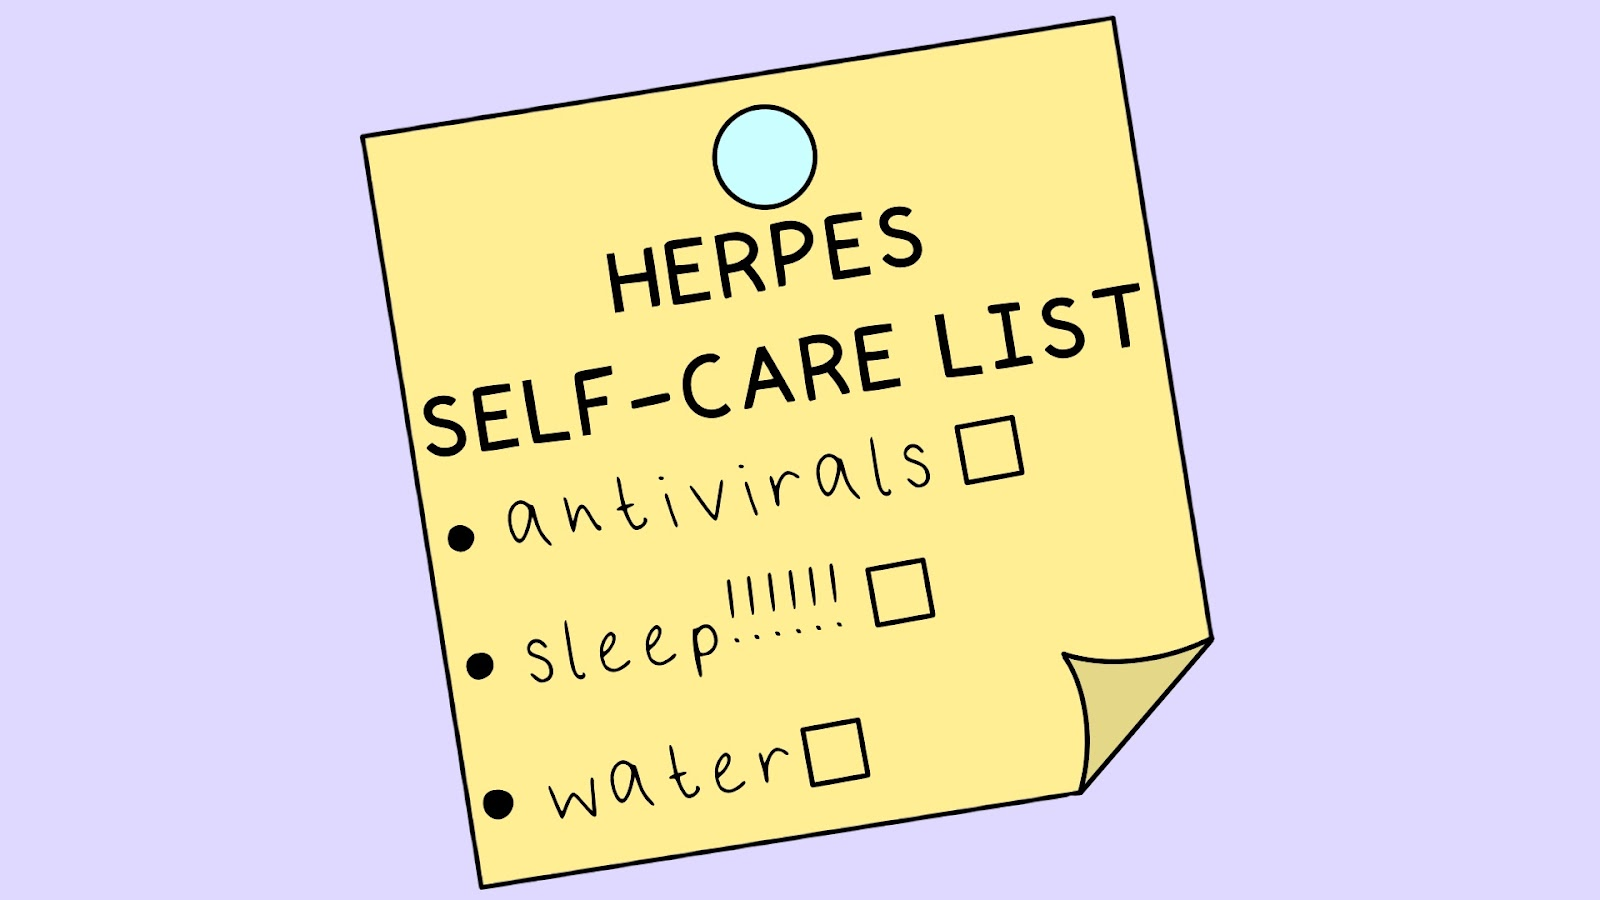 Illustration of a Herpes Outbreak Checklist